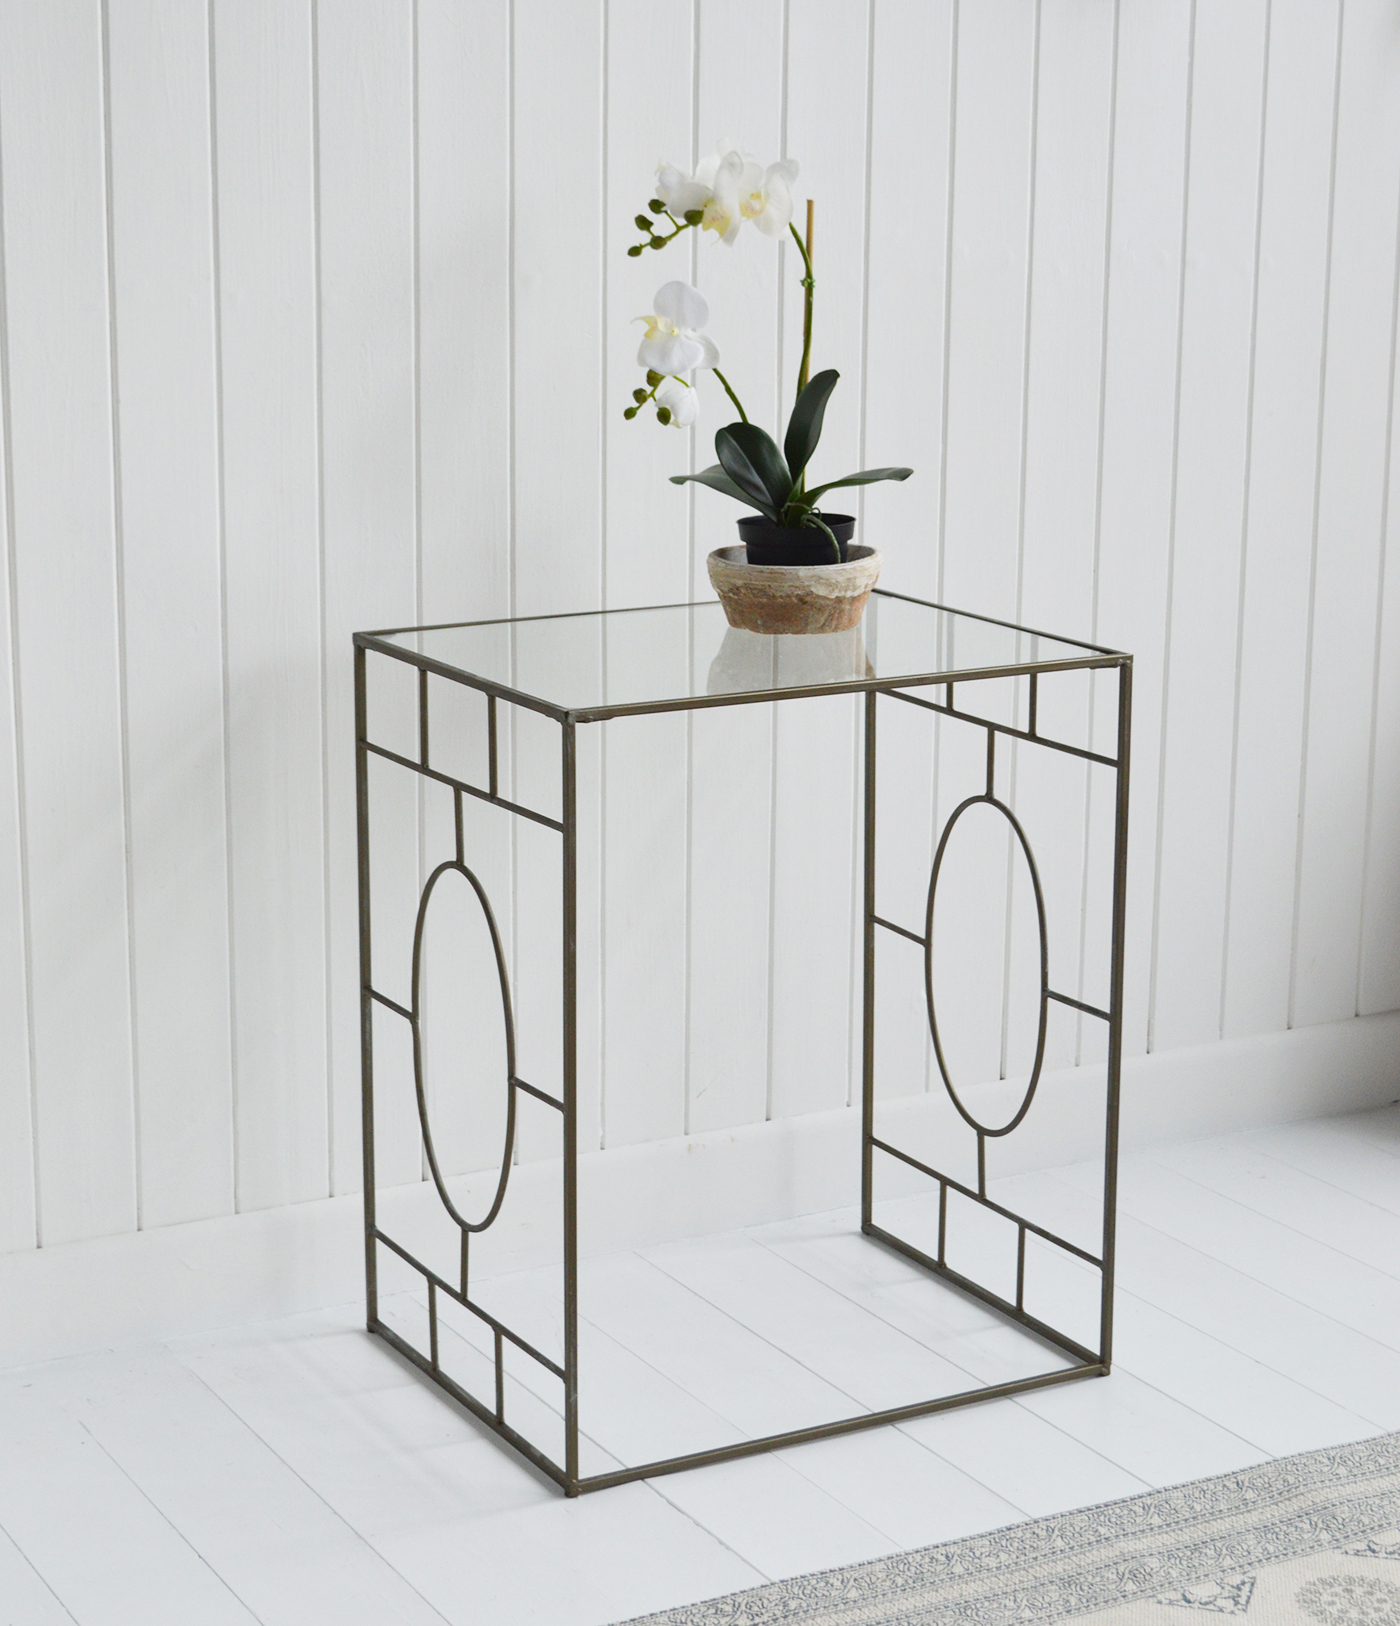 The Ascot side table.  In a gun metal silver finish and a glass top, this metal table offers impressive elegance as well as practicality.  Making a stunning centre piece of furniture as a bedside table in the bedroom, side or lamp table in the living room or hallway, all interiors will co-ordinate perfectly with this table.